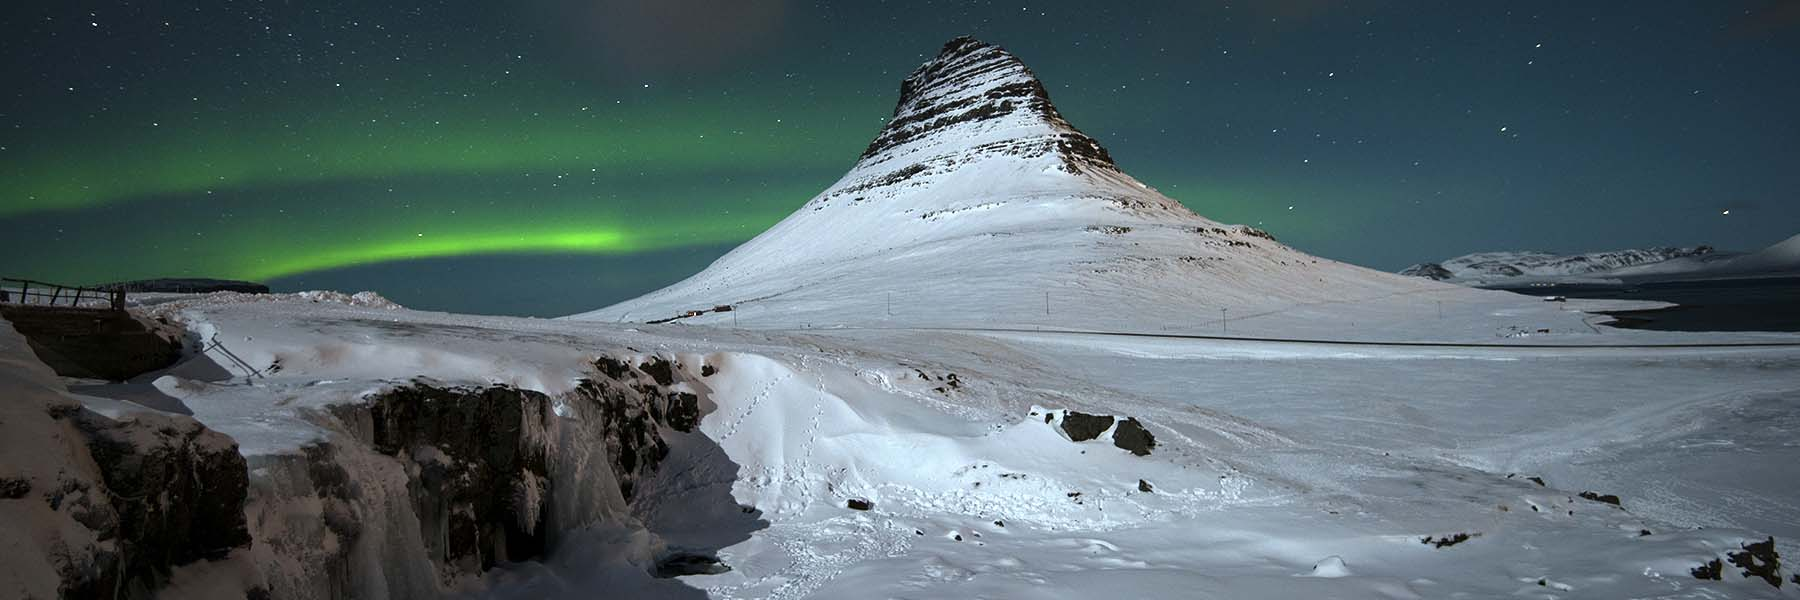 Iceland Northern Lights Expedition